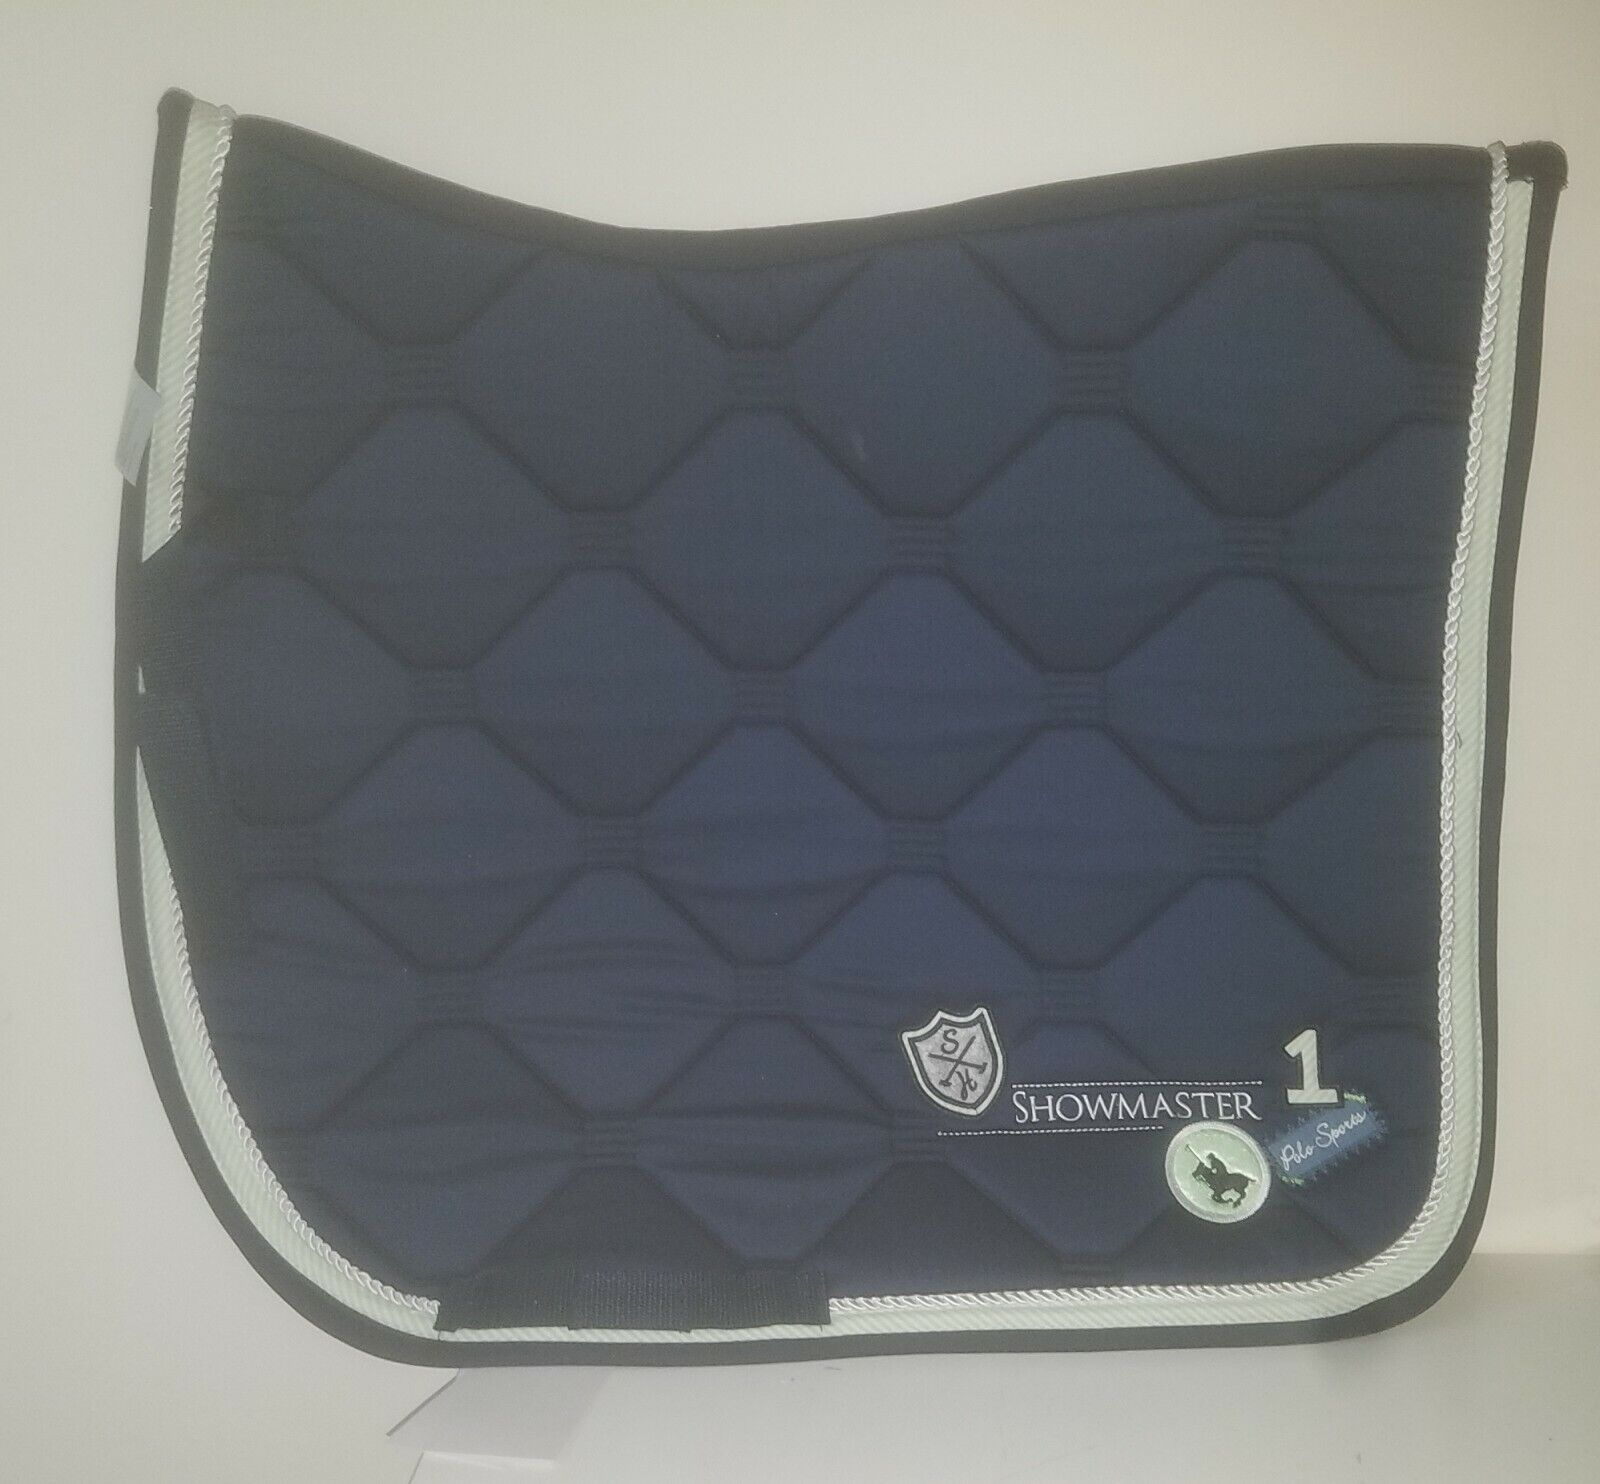 SHOWMASTER 210836DR-MN - Chabraque Polo Sport Dressage  NEUF